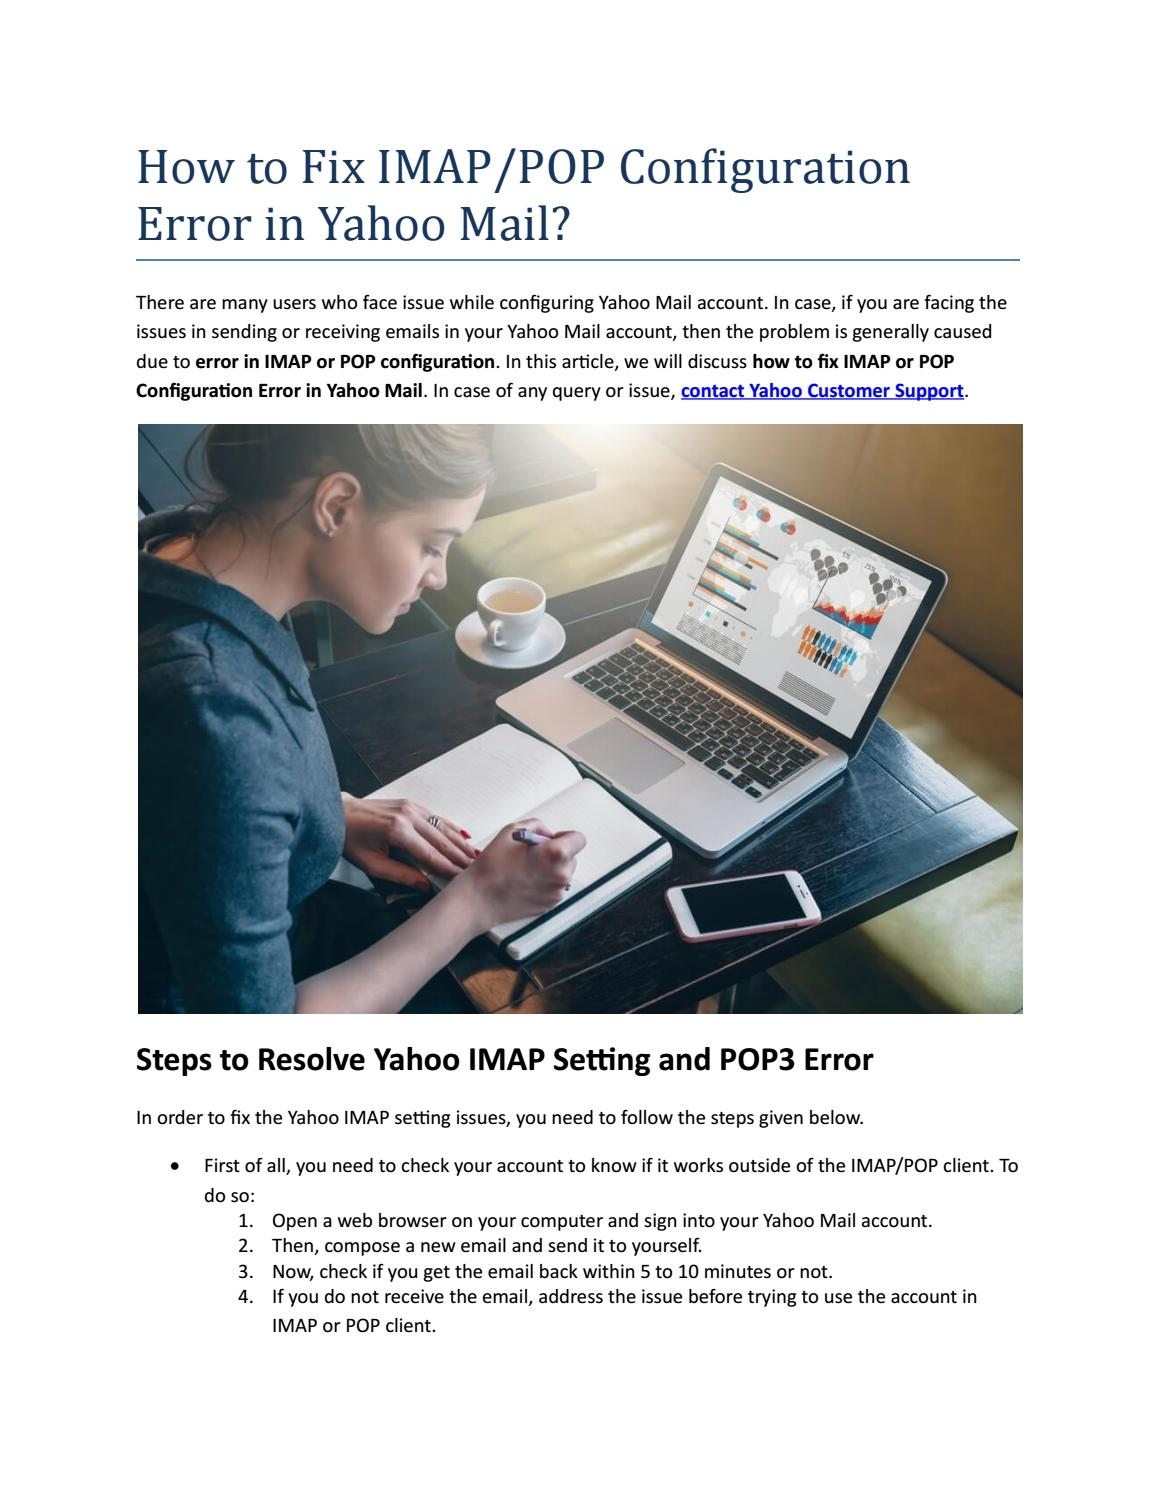 How to Fix IMAP/POP Configuration Error in Yahoo Mail?